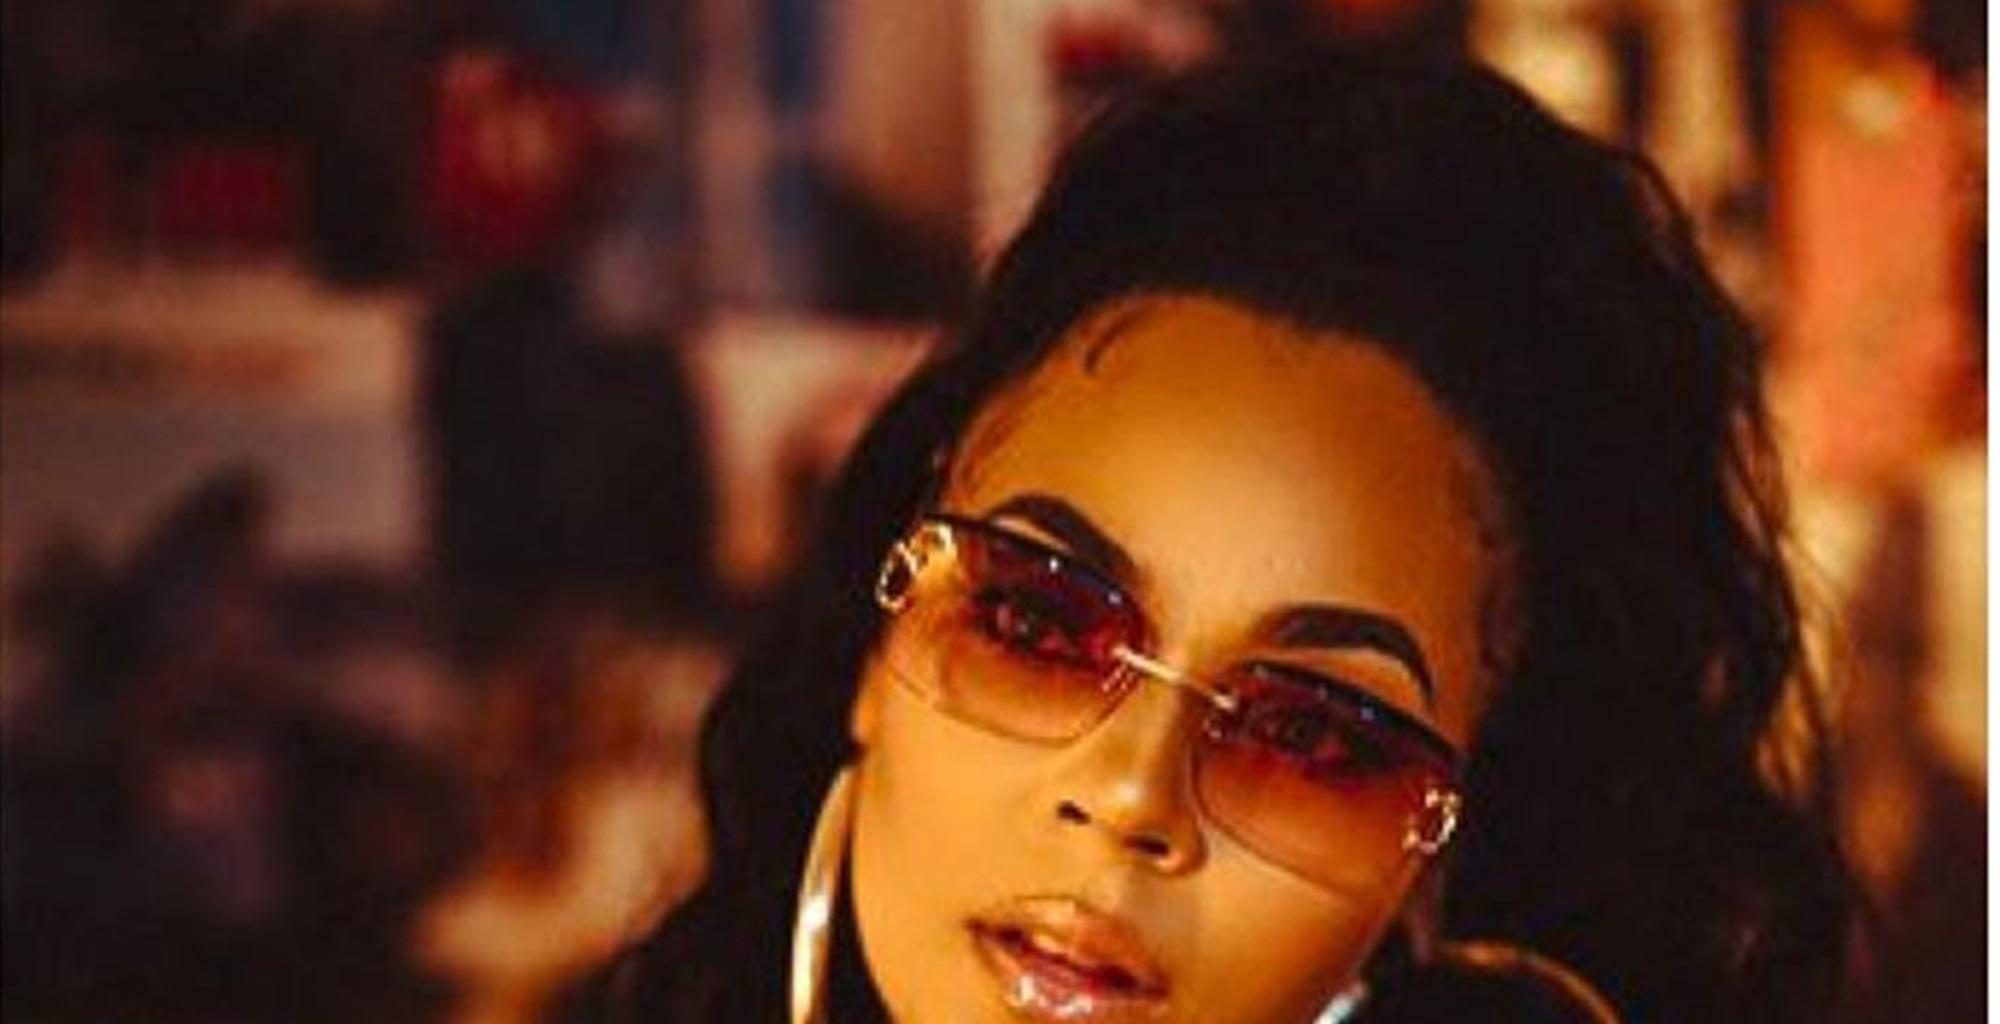 Ashanti Is Burning Up In New Video With Hot New Hairstyle And Tempting Red Outfit